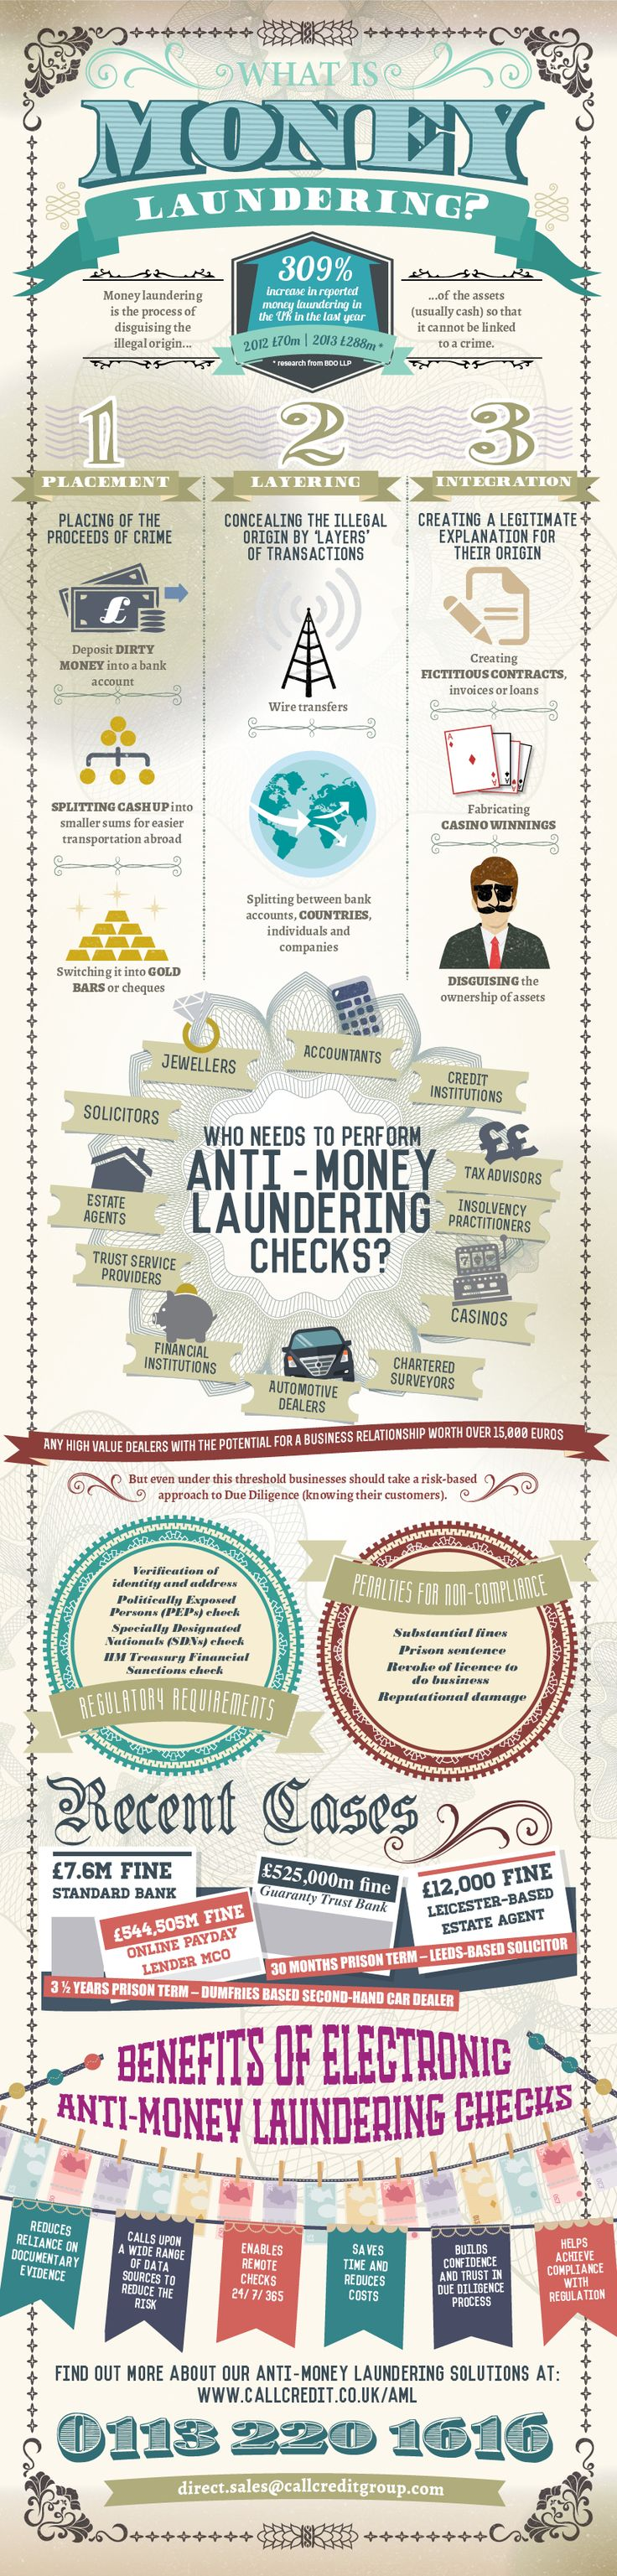 What is money laundering? In the last year the UK saw a 309% increase in the number of reported money laundering cases. Who needs to perform anti-money laundering checks? What are the benefits of using electronic checks? Take a look at our infographic to find out more! #InfographicsMoney